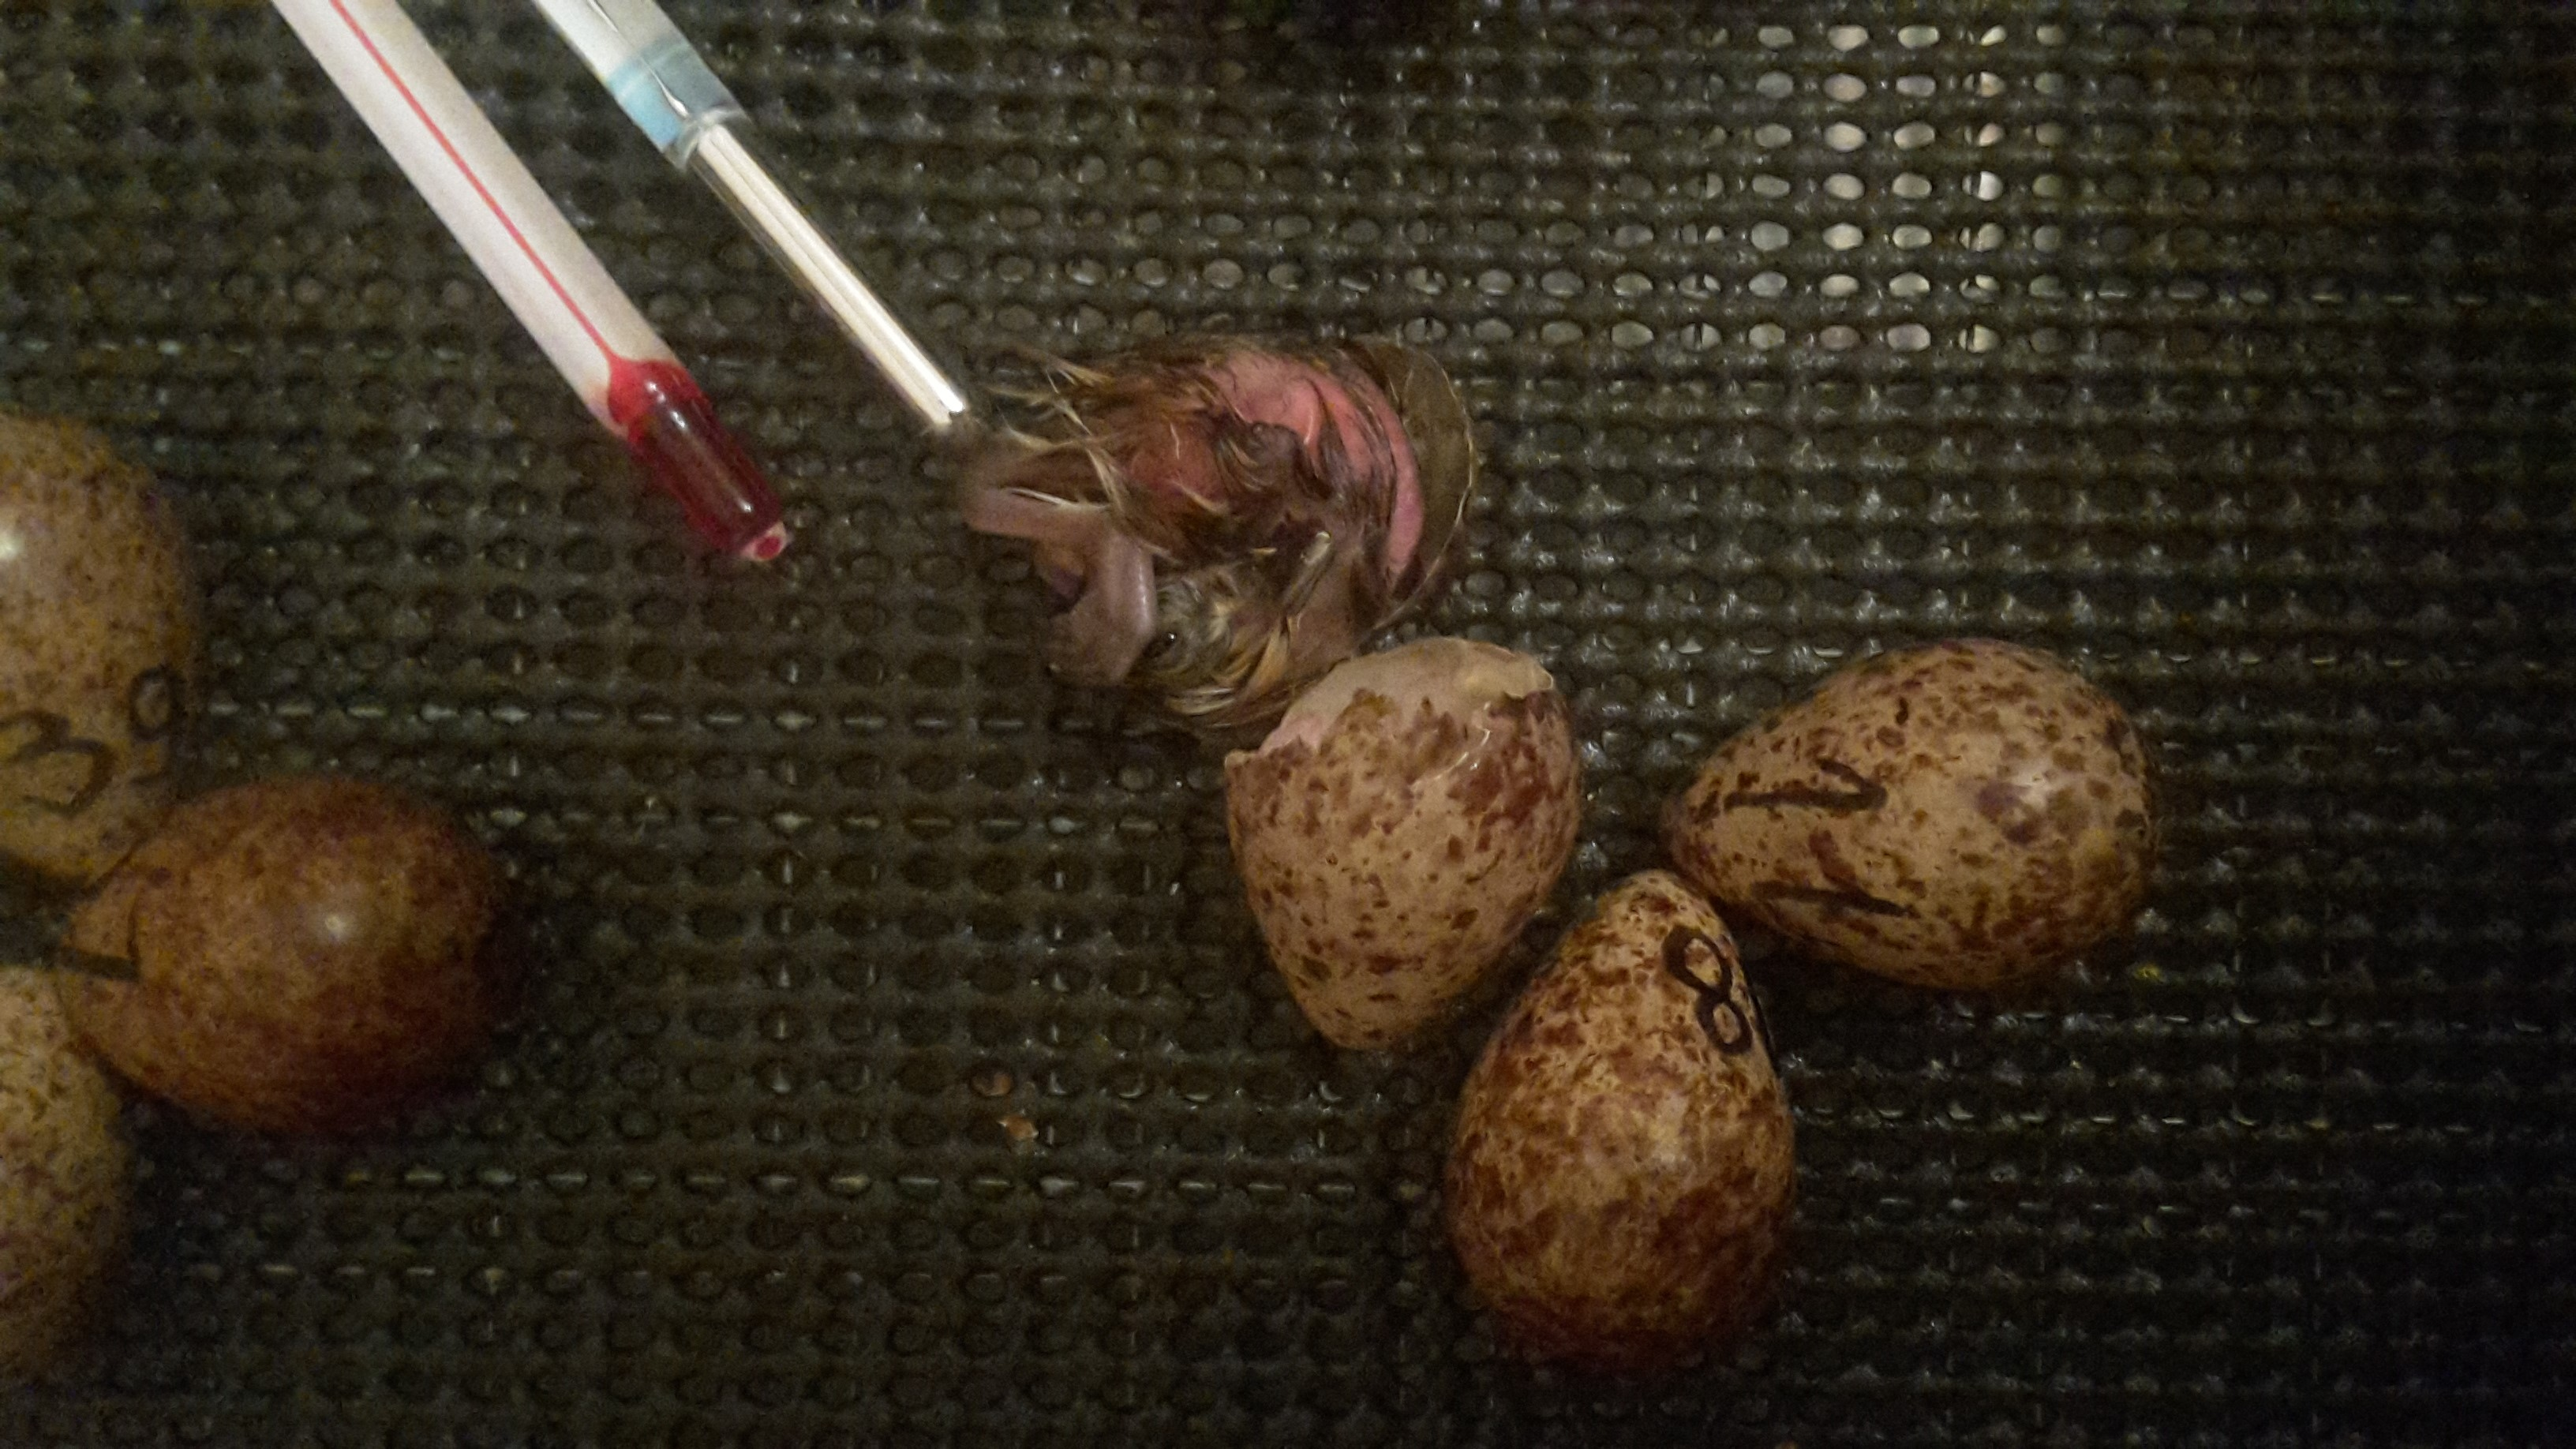 Newly hatched chick ready for weighing and colour ringing before being put in the 'Drier'. Photo by Jodie Clements.